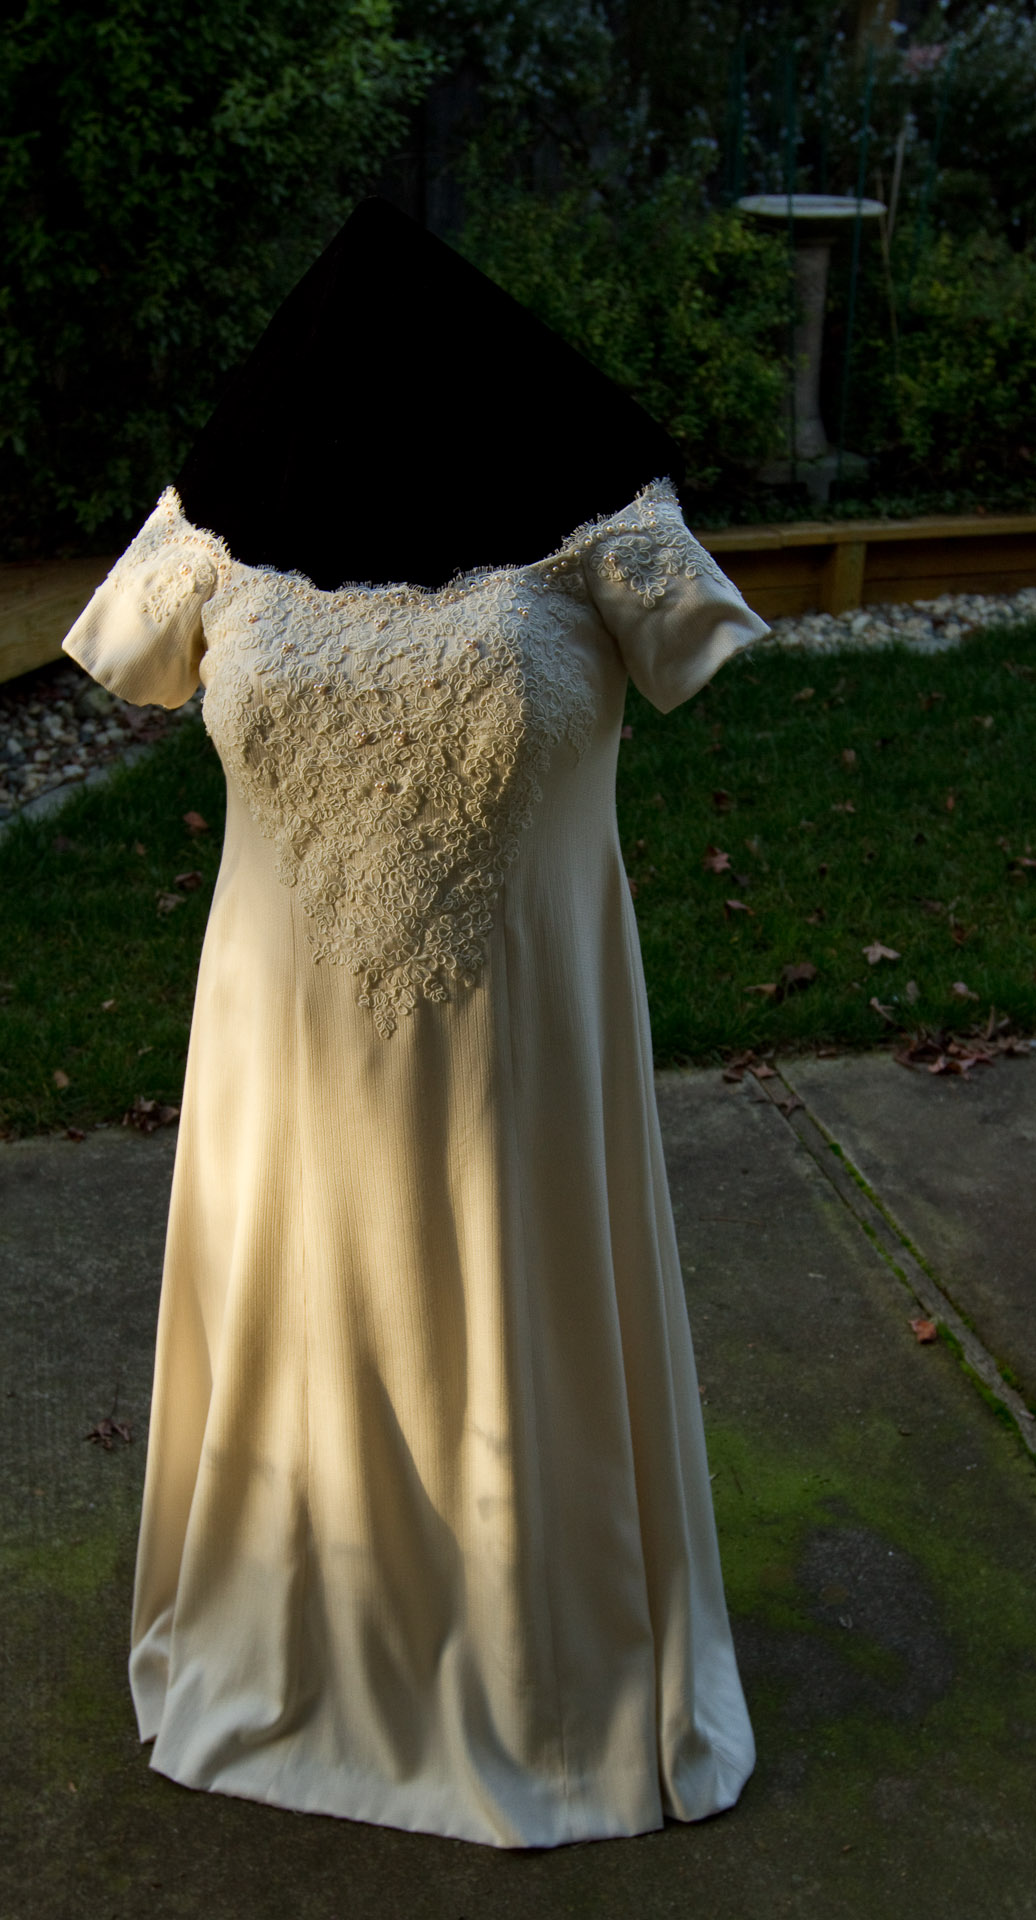 handwoven wedding dress on dress form